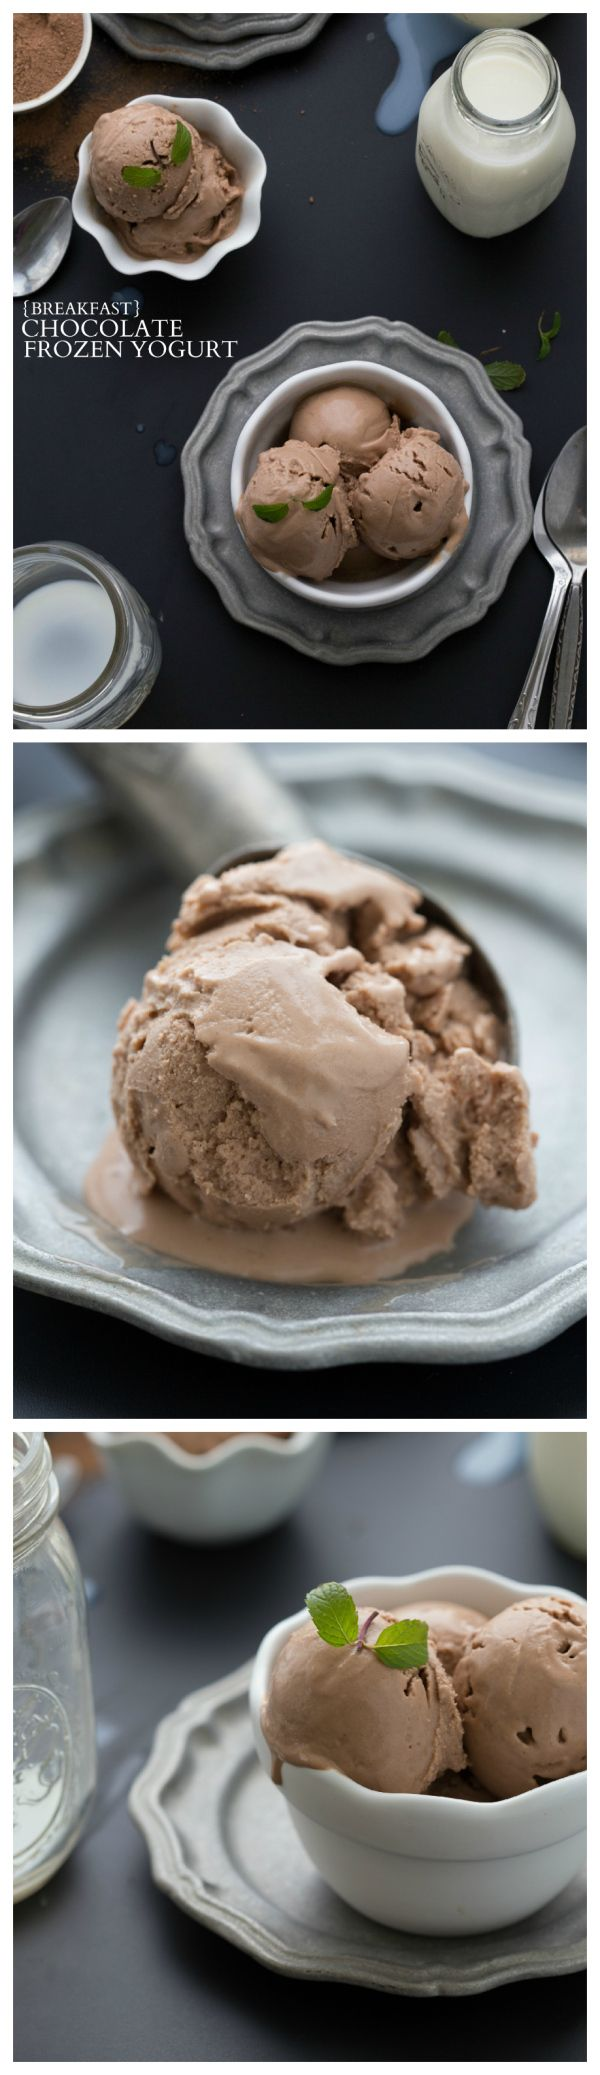 Healthy Chocolate Frozen Yogurt